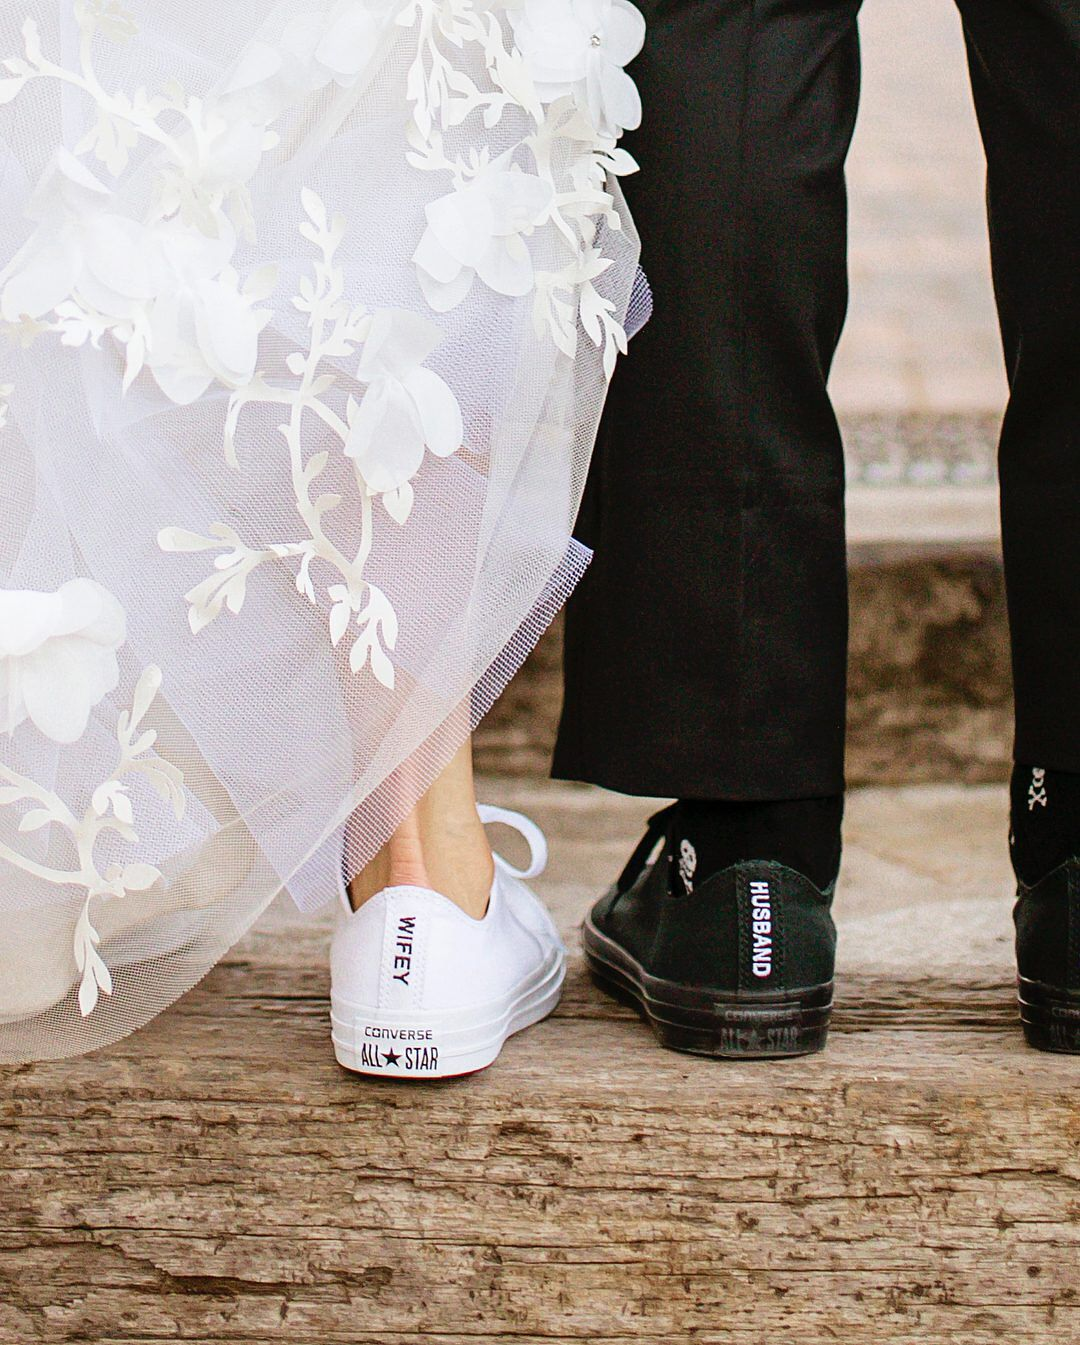 Pin by Roxy Bruinenberg on Wedding ideas | Wedding sneakers